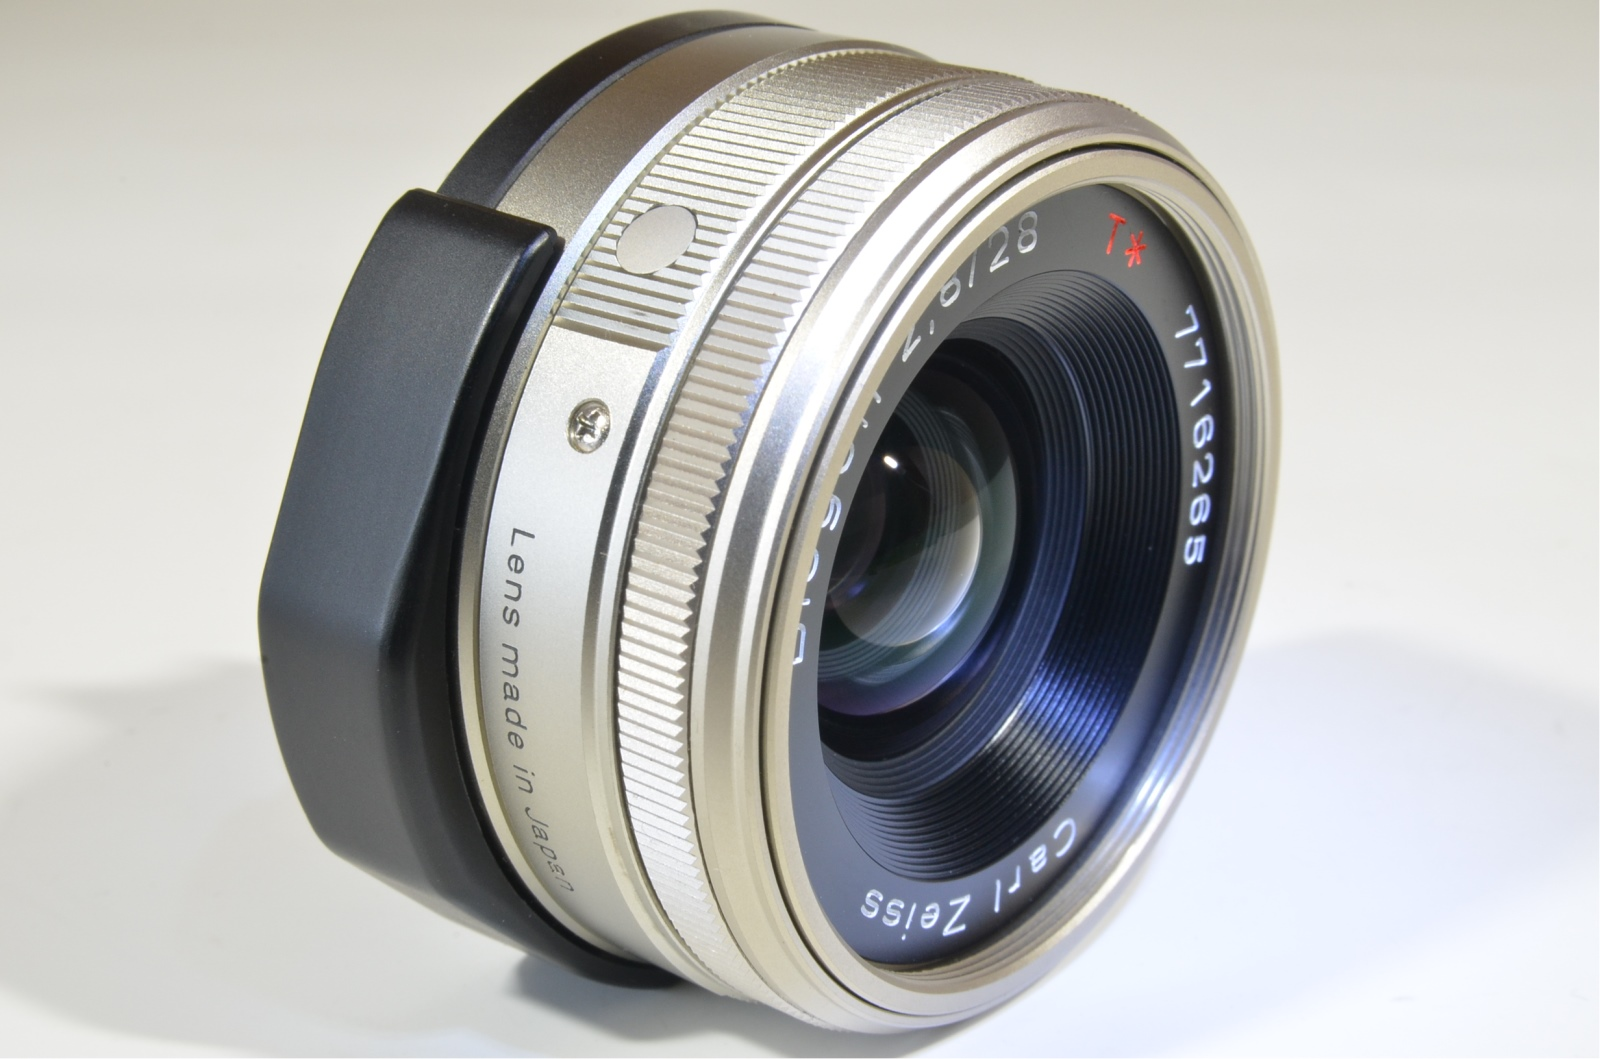 contax carl zeiss t* biogon 28mm f2.8 g lens